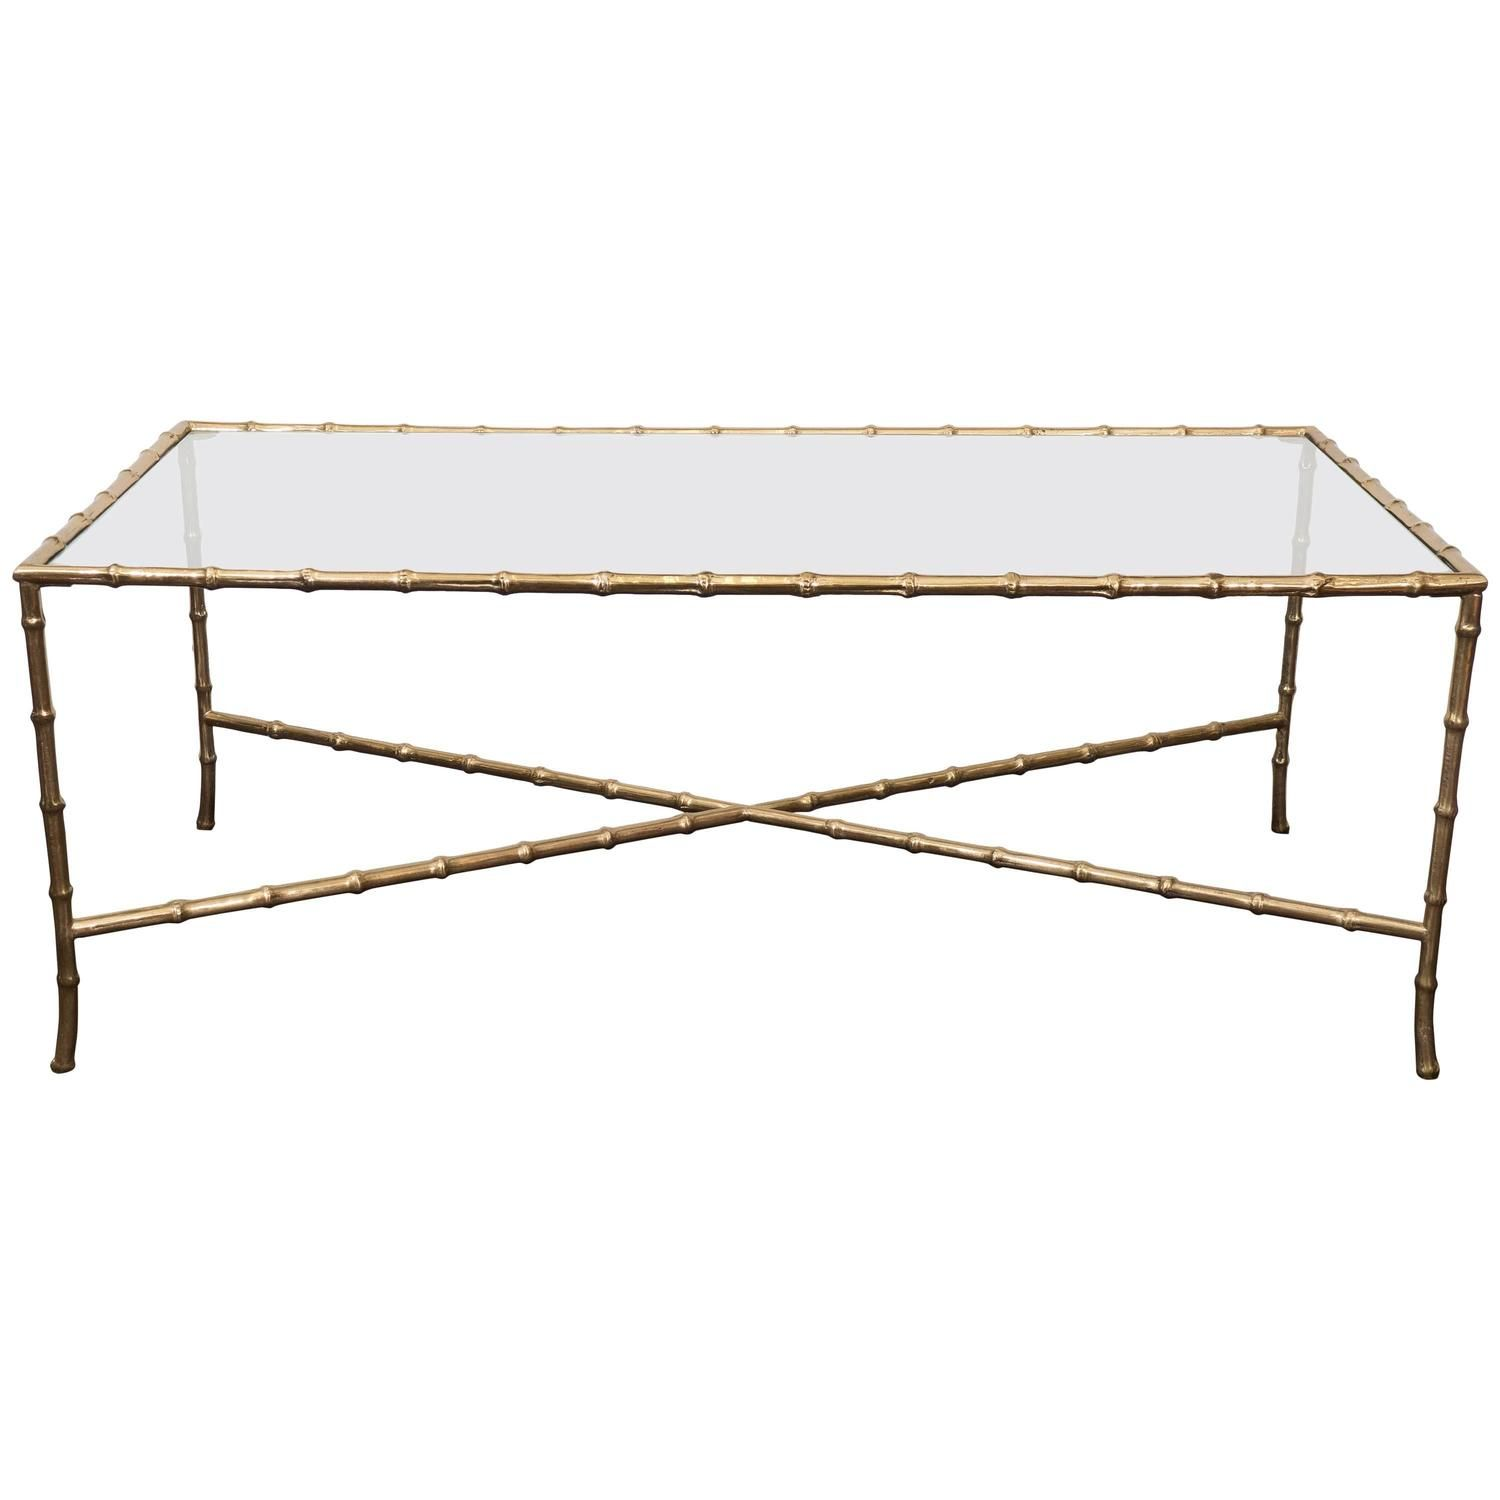 Mid Century Brass Faux Bamboo Coffee Table By Maison Bagues Bamboo Coffee Table Faux Bamboo Coffee Table [ 1500 x 1500 Pixel ]